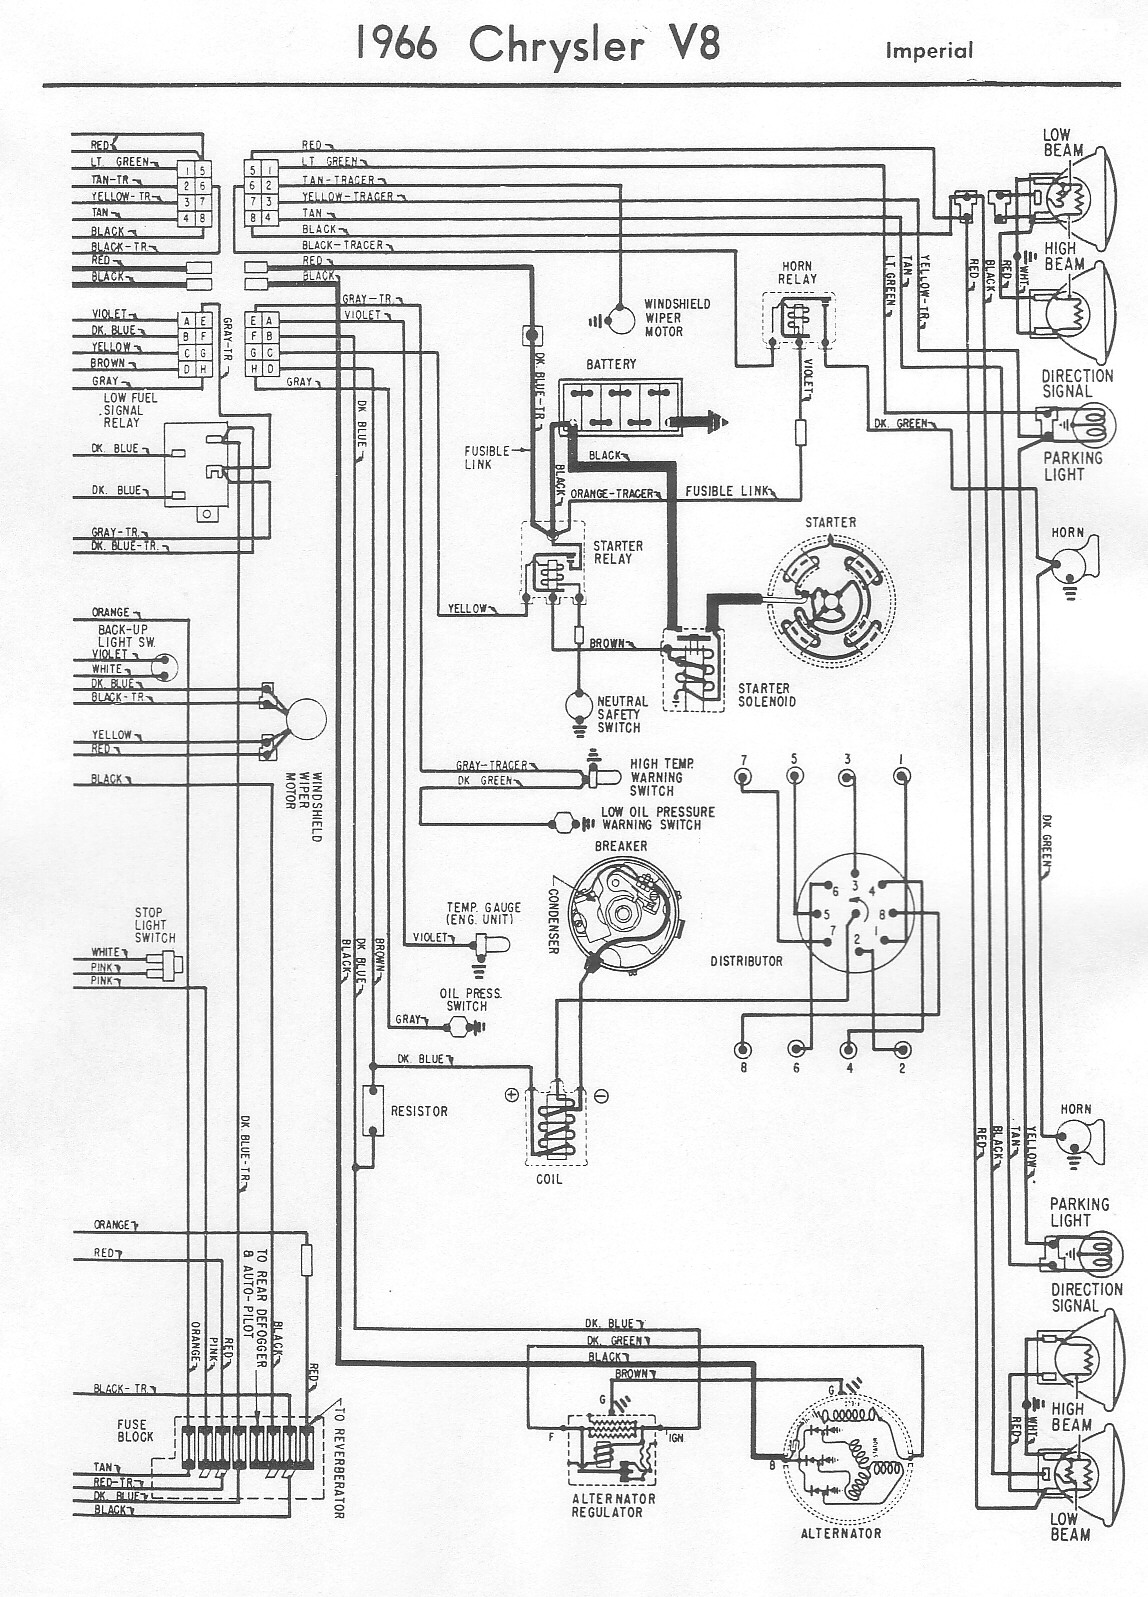 1964 chrysler 300 wiring diagram automotive wiring diagrams 2005 chrysler 300 stereo wiring diagram 1966 chrysler [ 1148 x 1597 Pixel ]